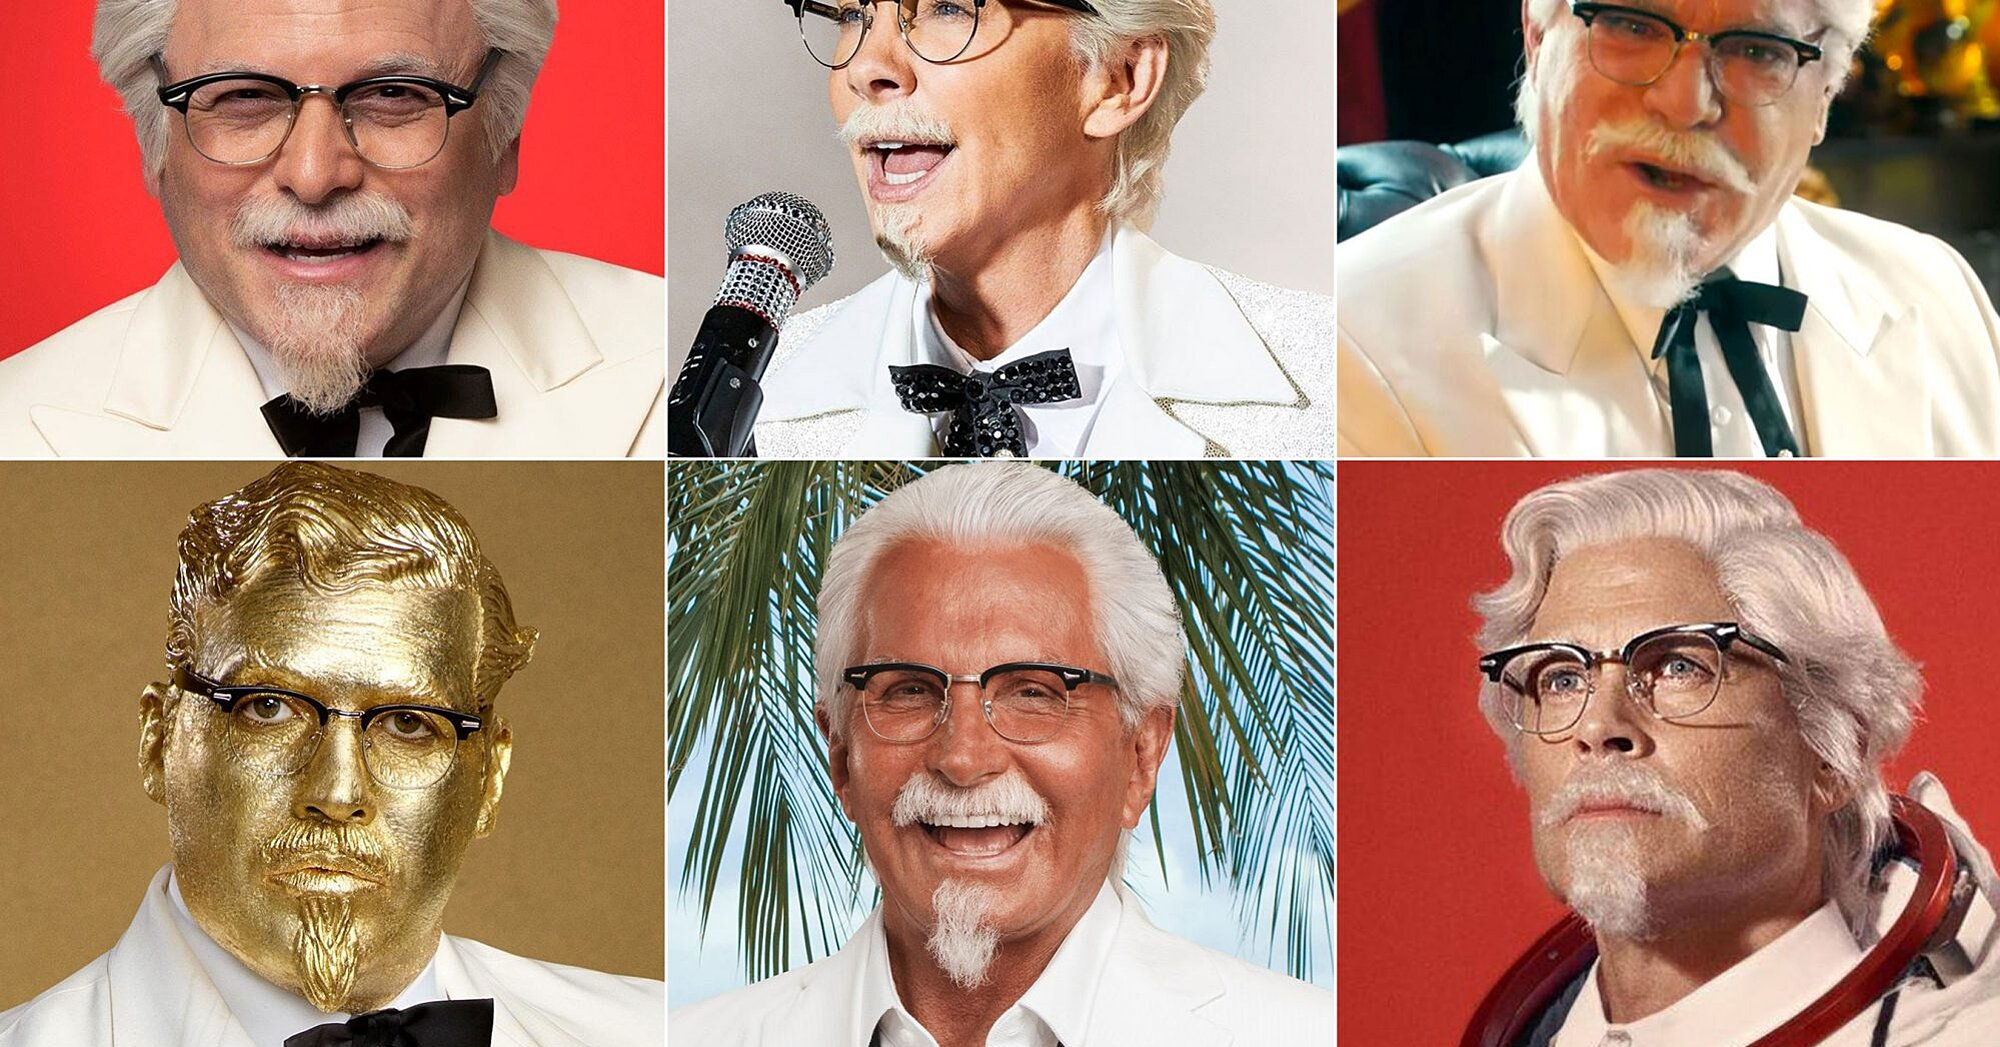 KFC commercials: Every person who's played Colonel Sanders | EW.com